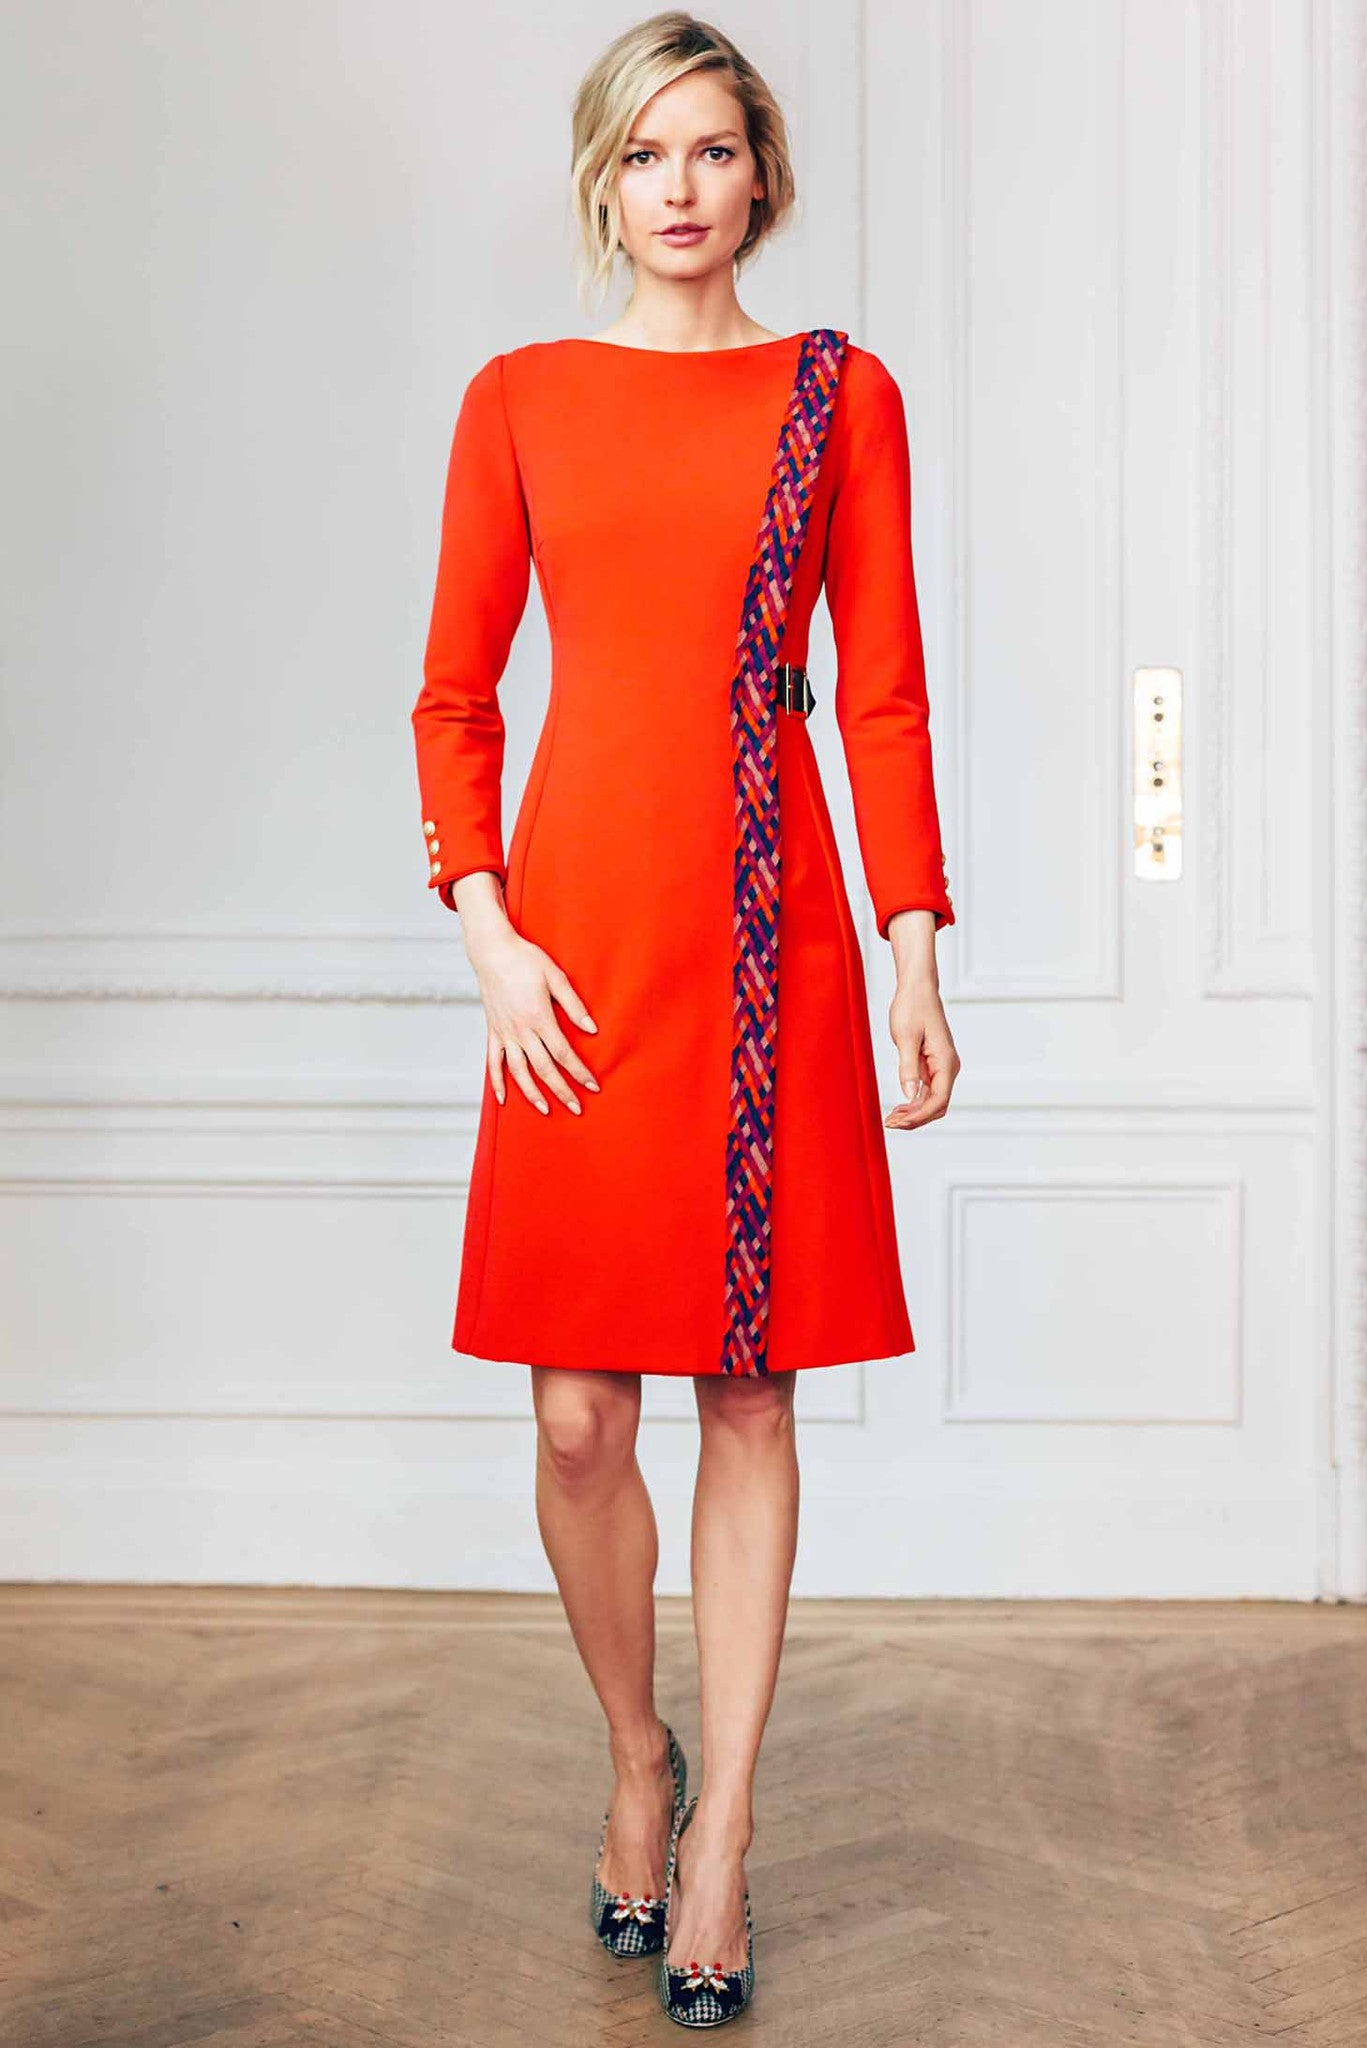 Bateau Neck Bracelet length Sleeve Dress With Woven Trim and Leather Side Buckle Closure